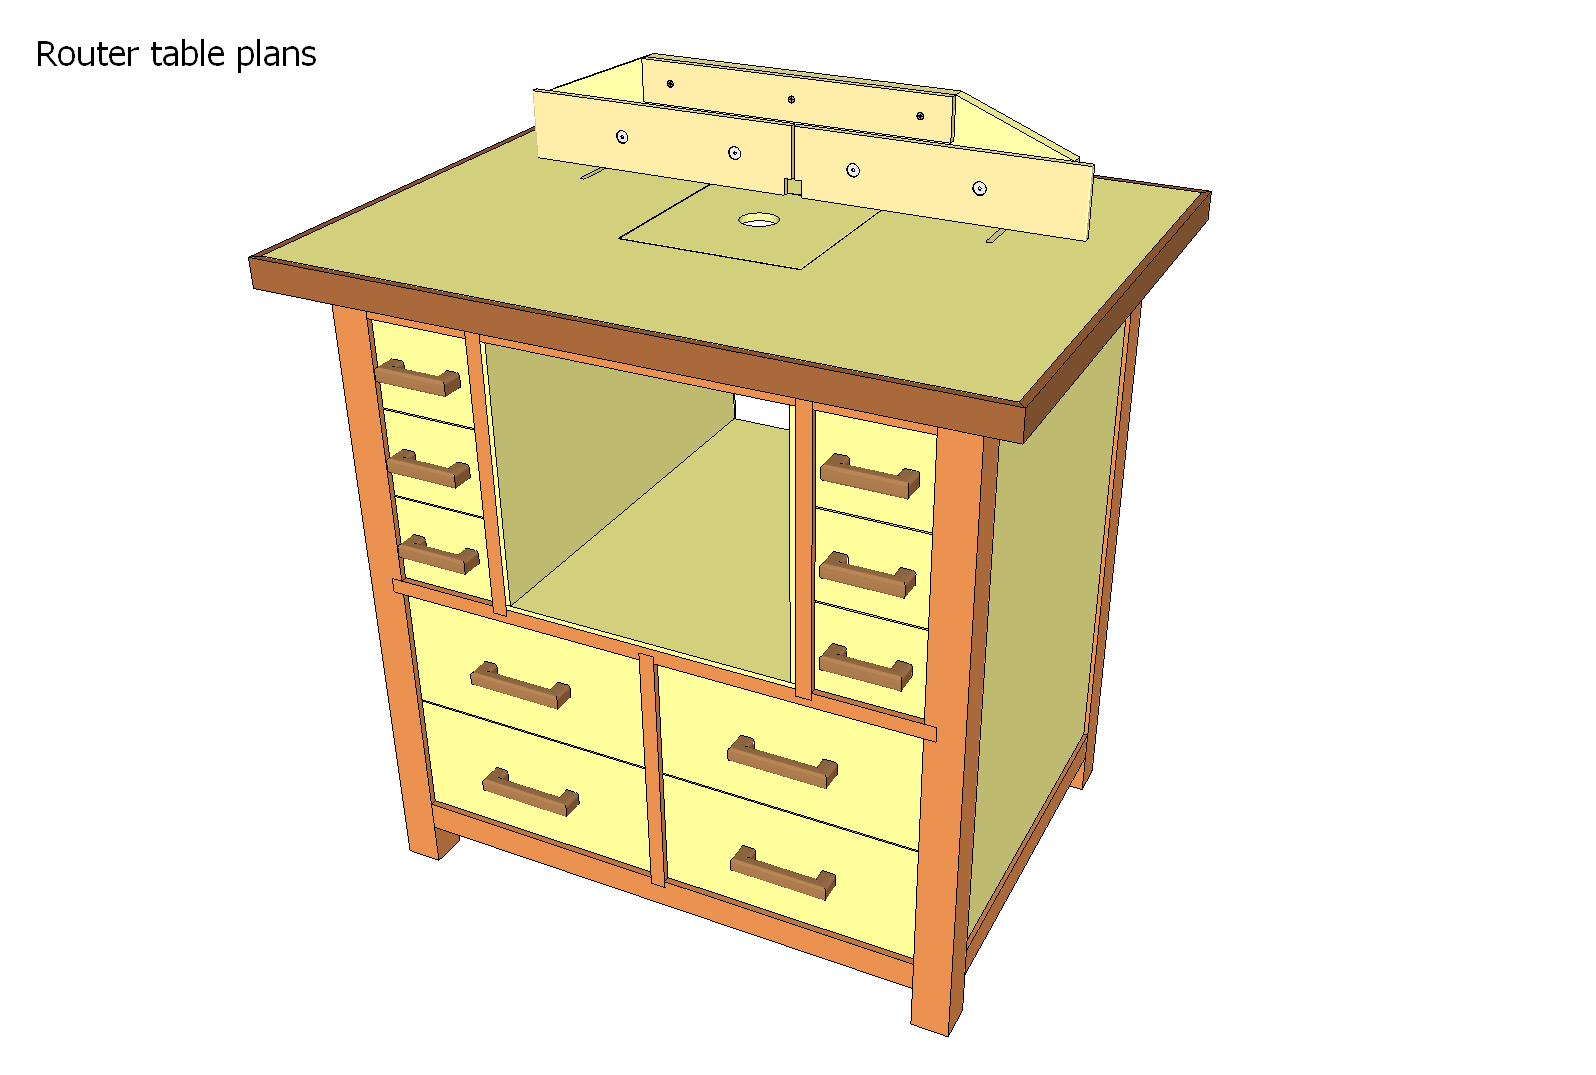 Router table plans printer optimized greentooth Image collections